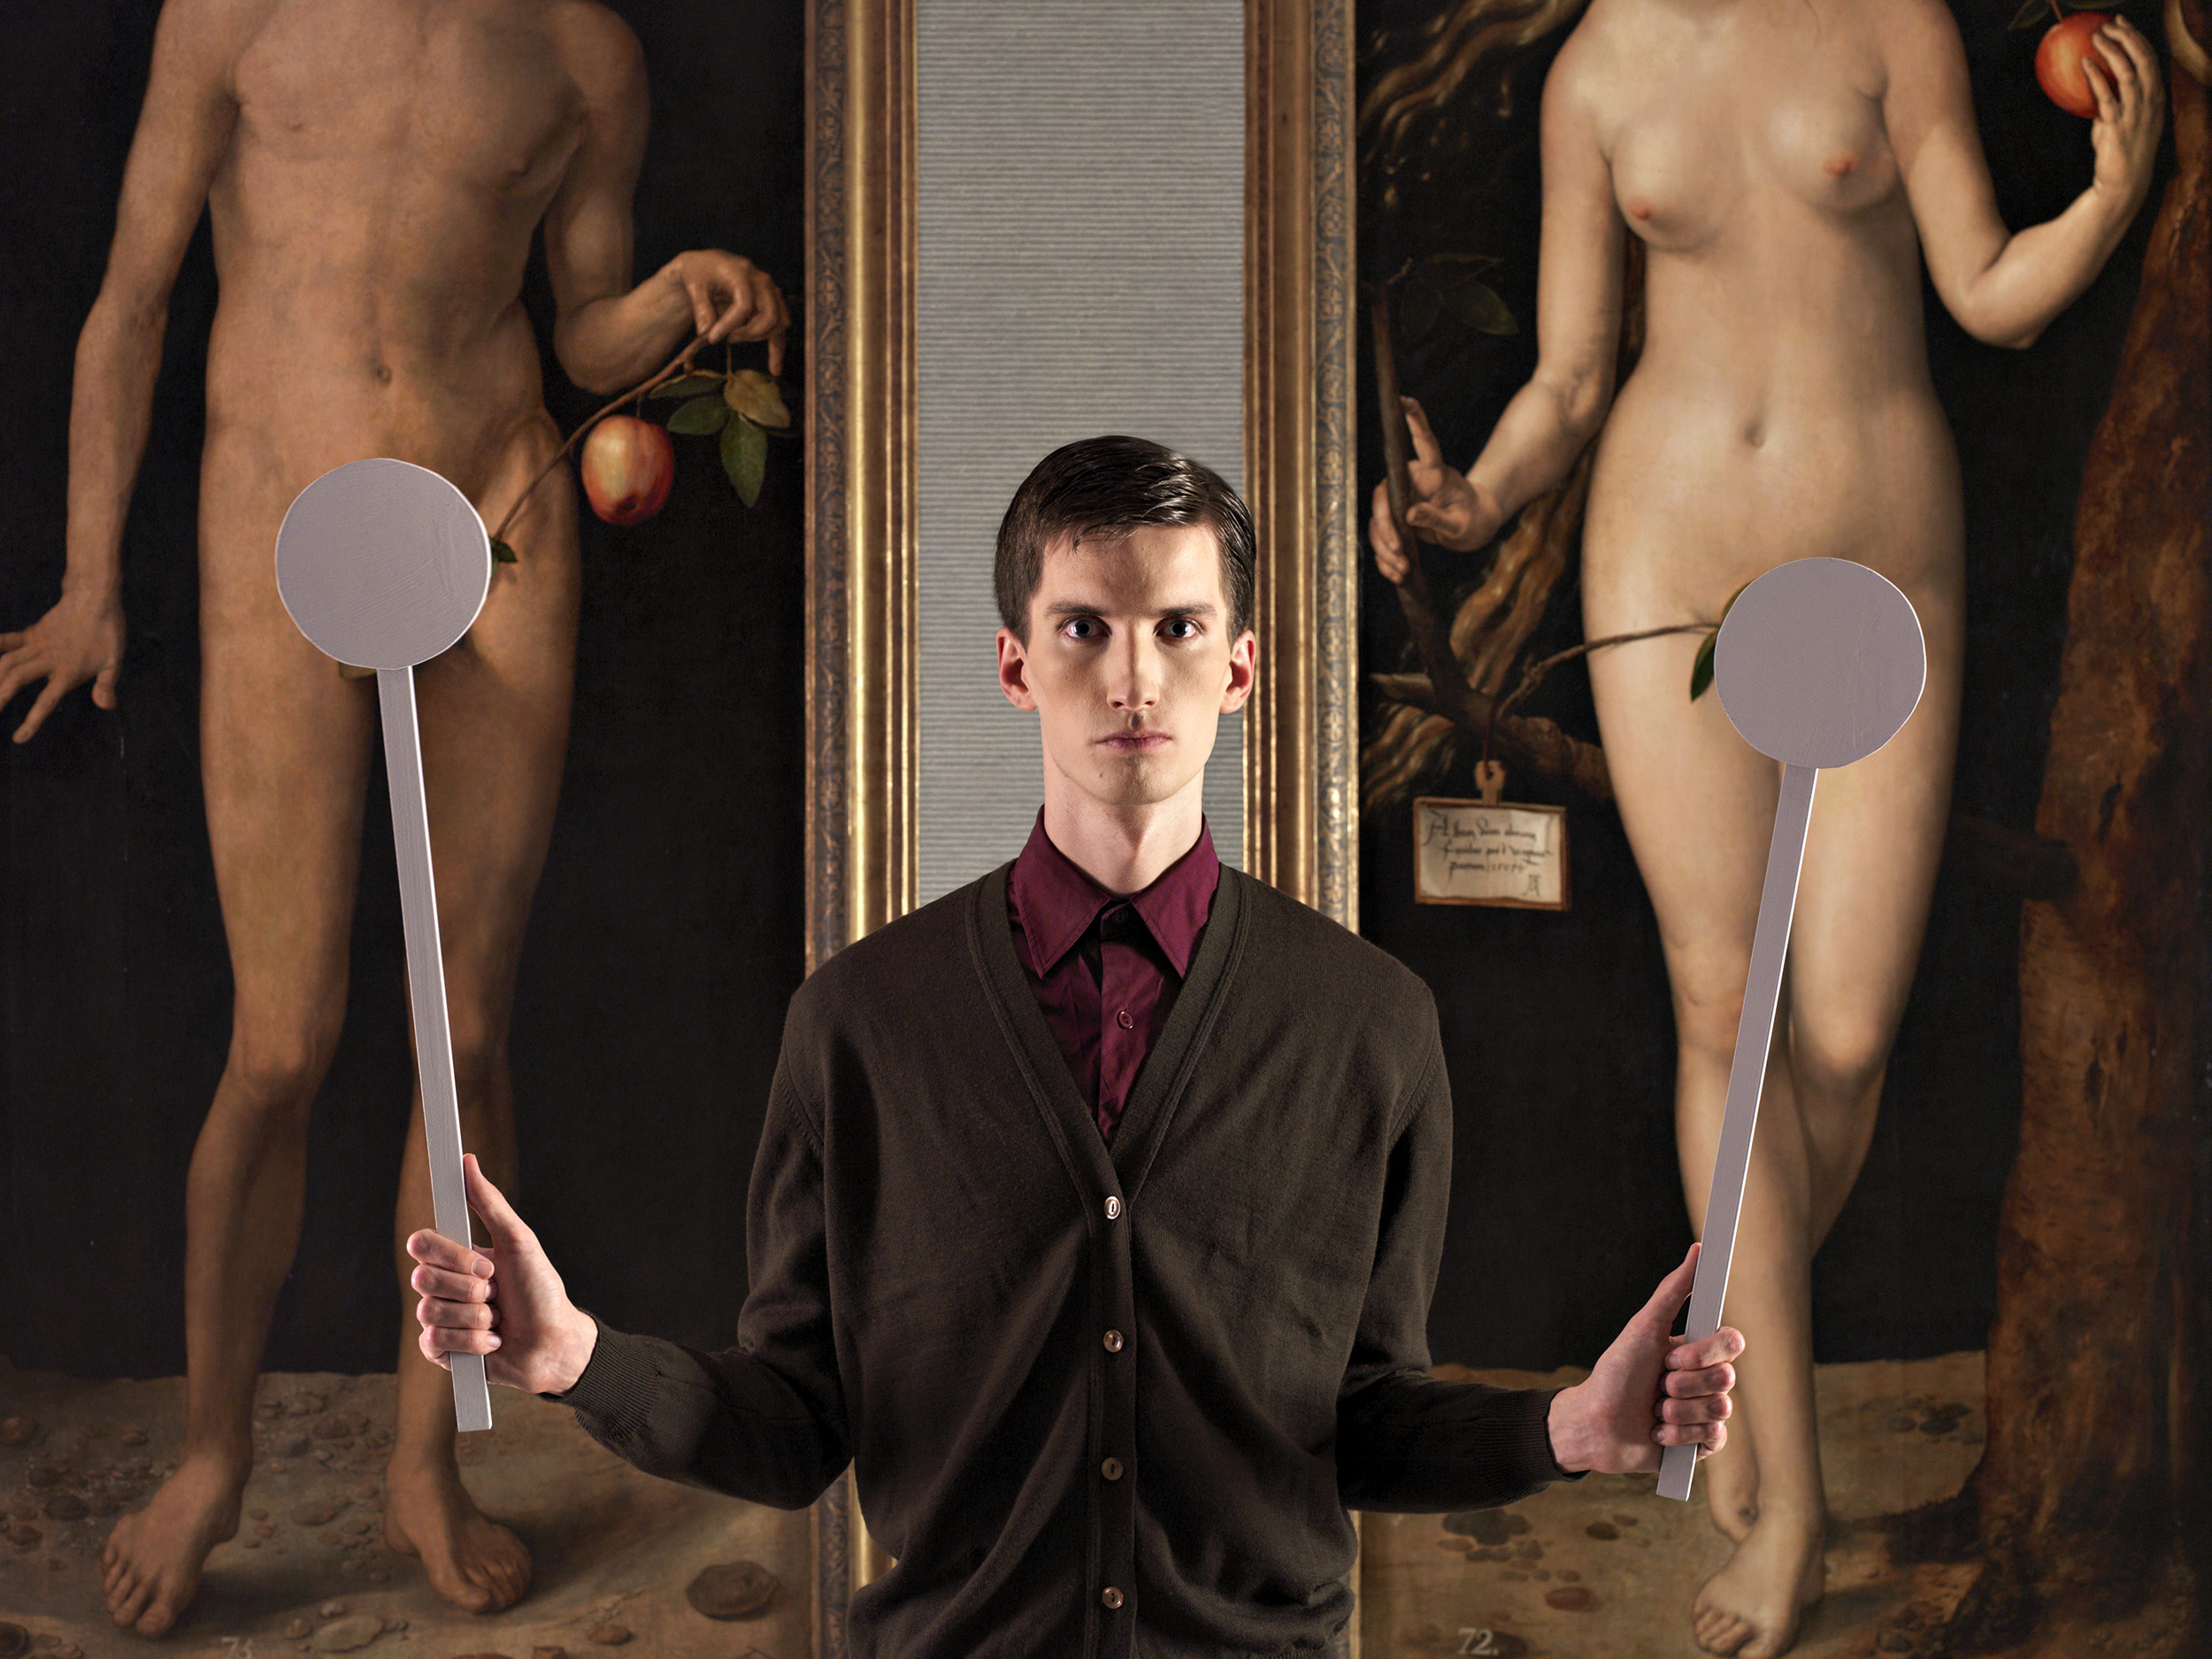 Adam and Eve  2009, colour photograph 101 x 76 cm / 30 x 40 in. Edition of 7 Produced with the cooperation of the Museo Nacional del Prado